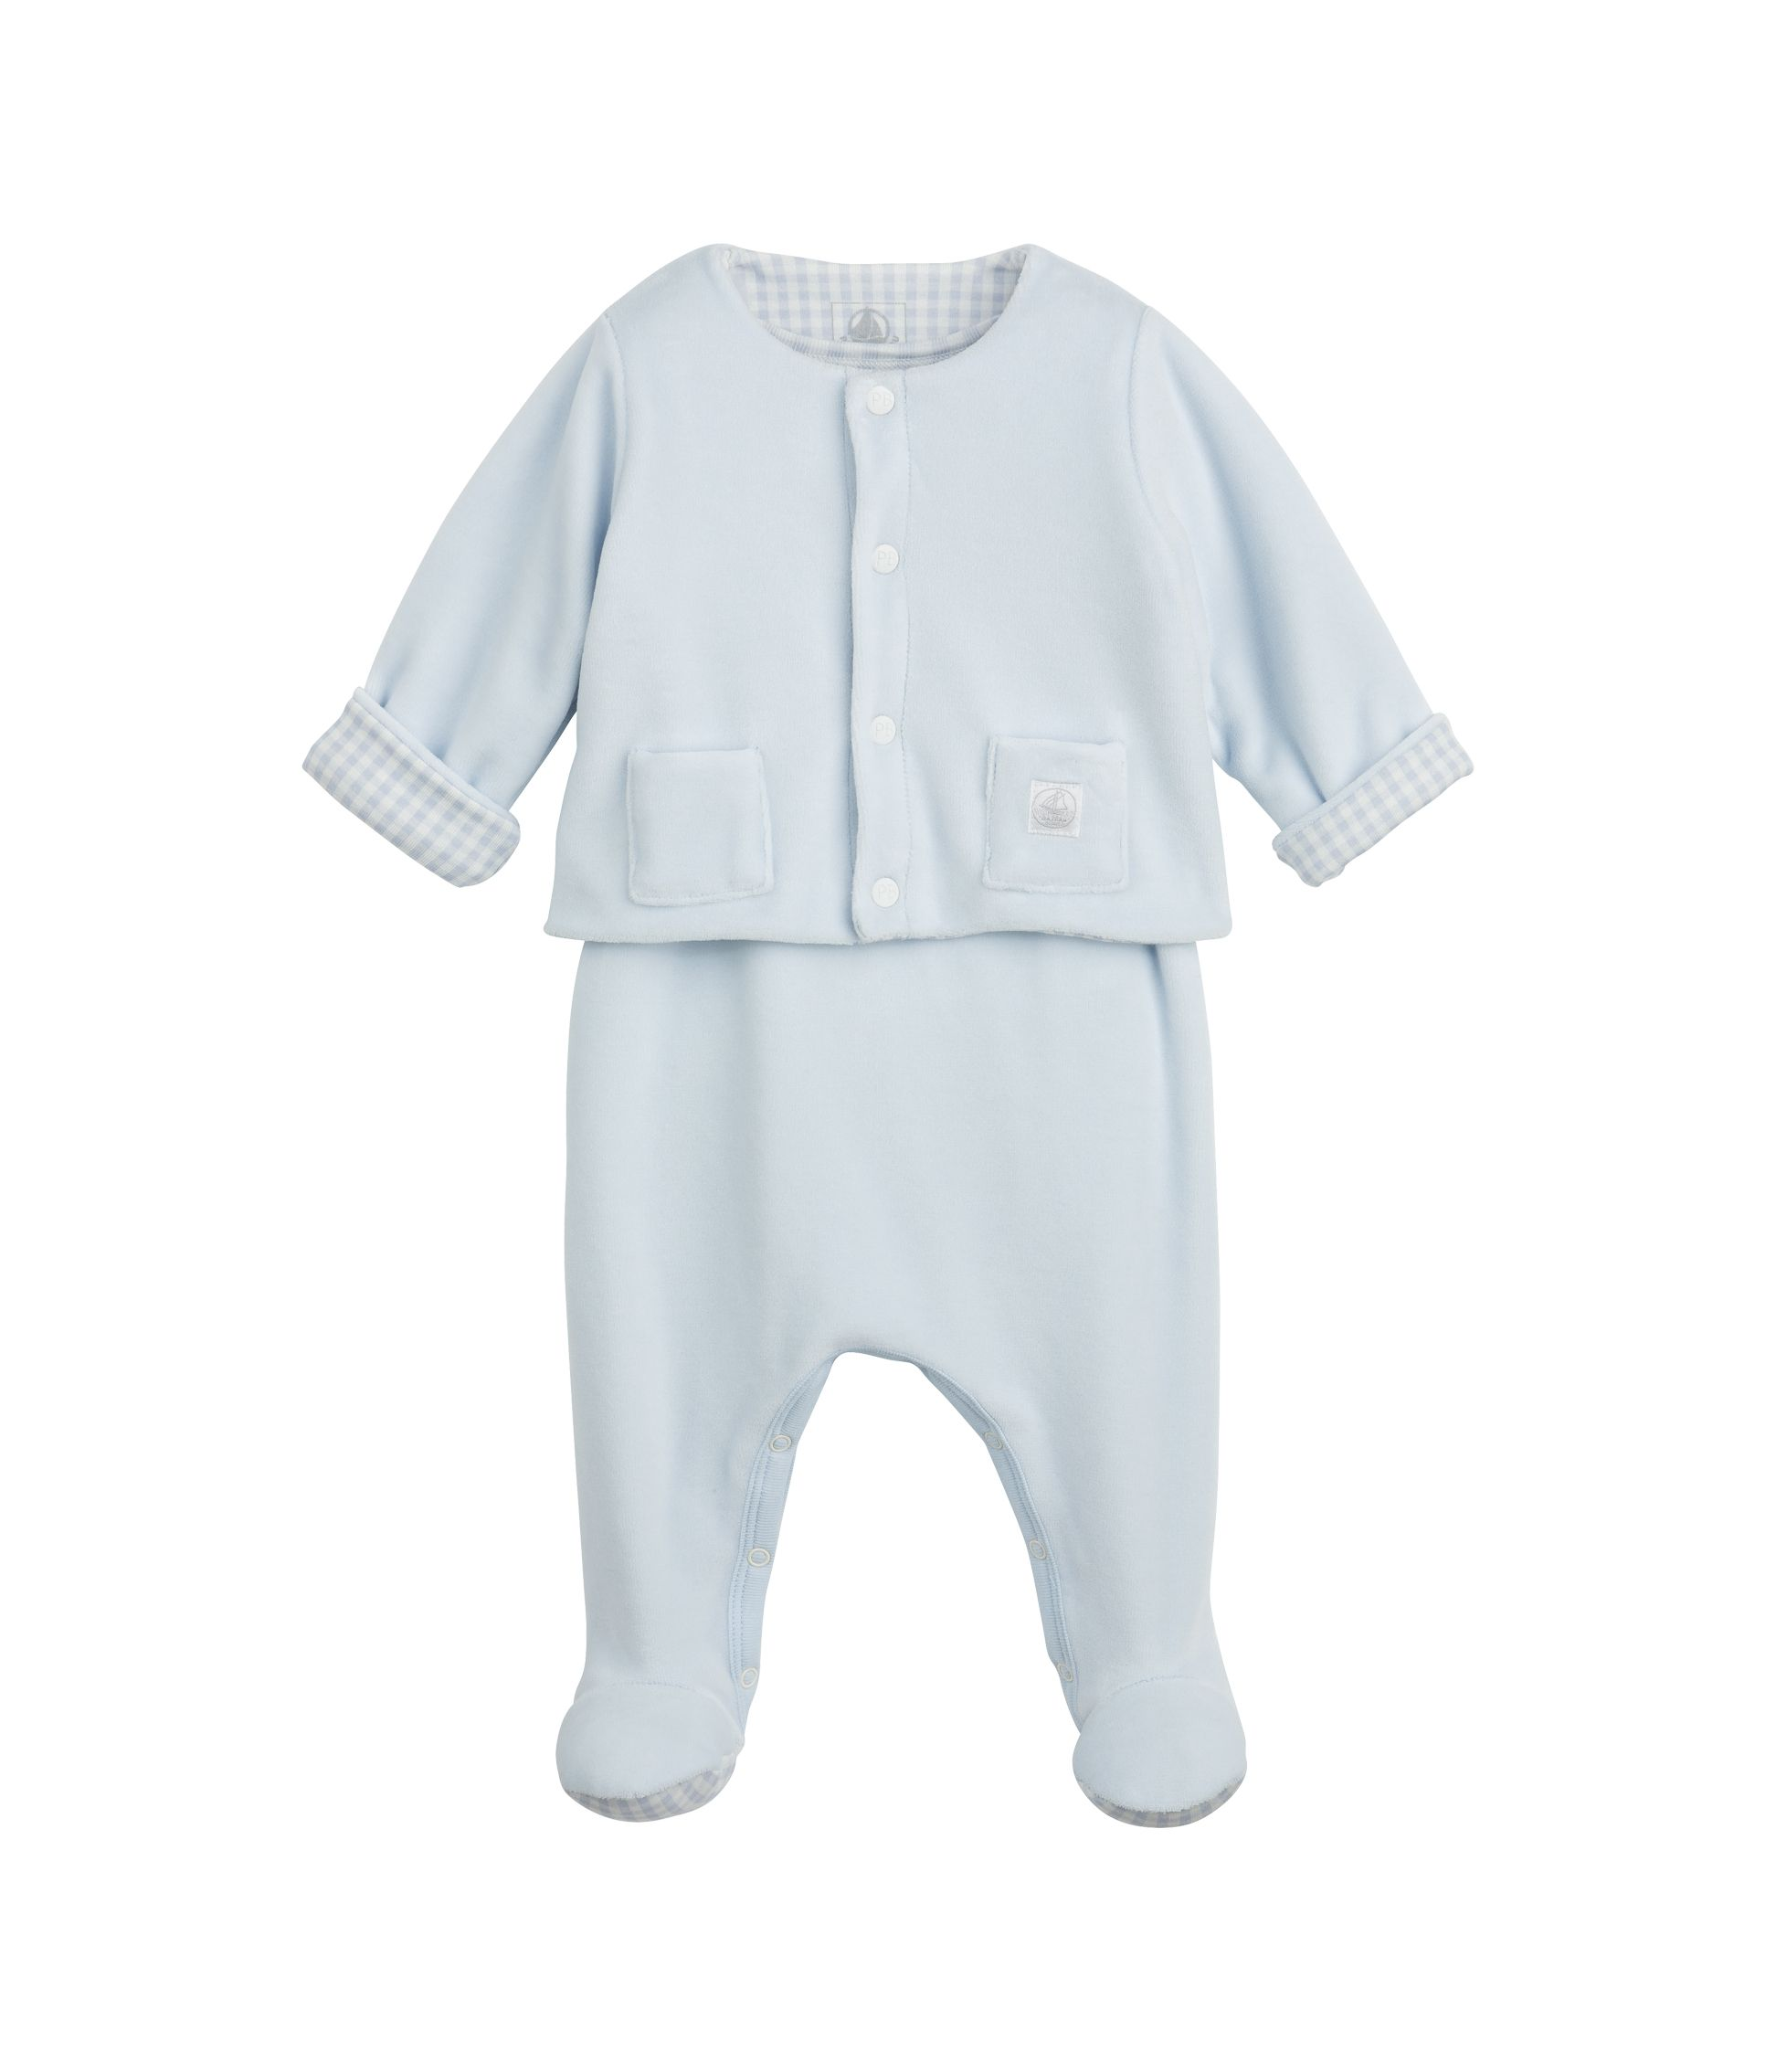 Baby reversible velour jacket and sleepsuit